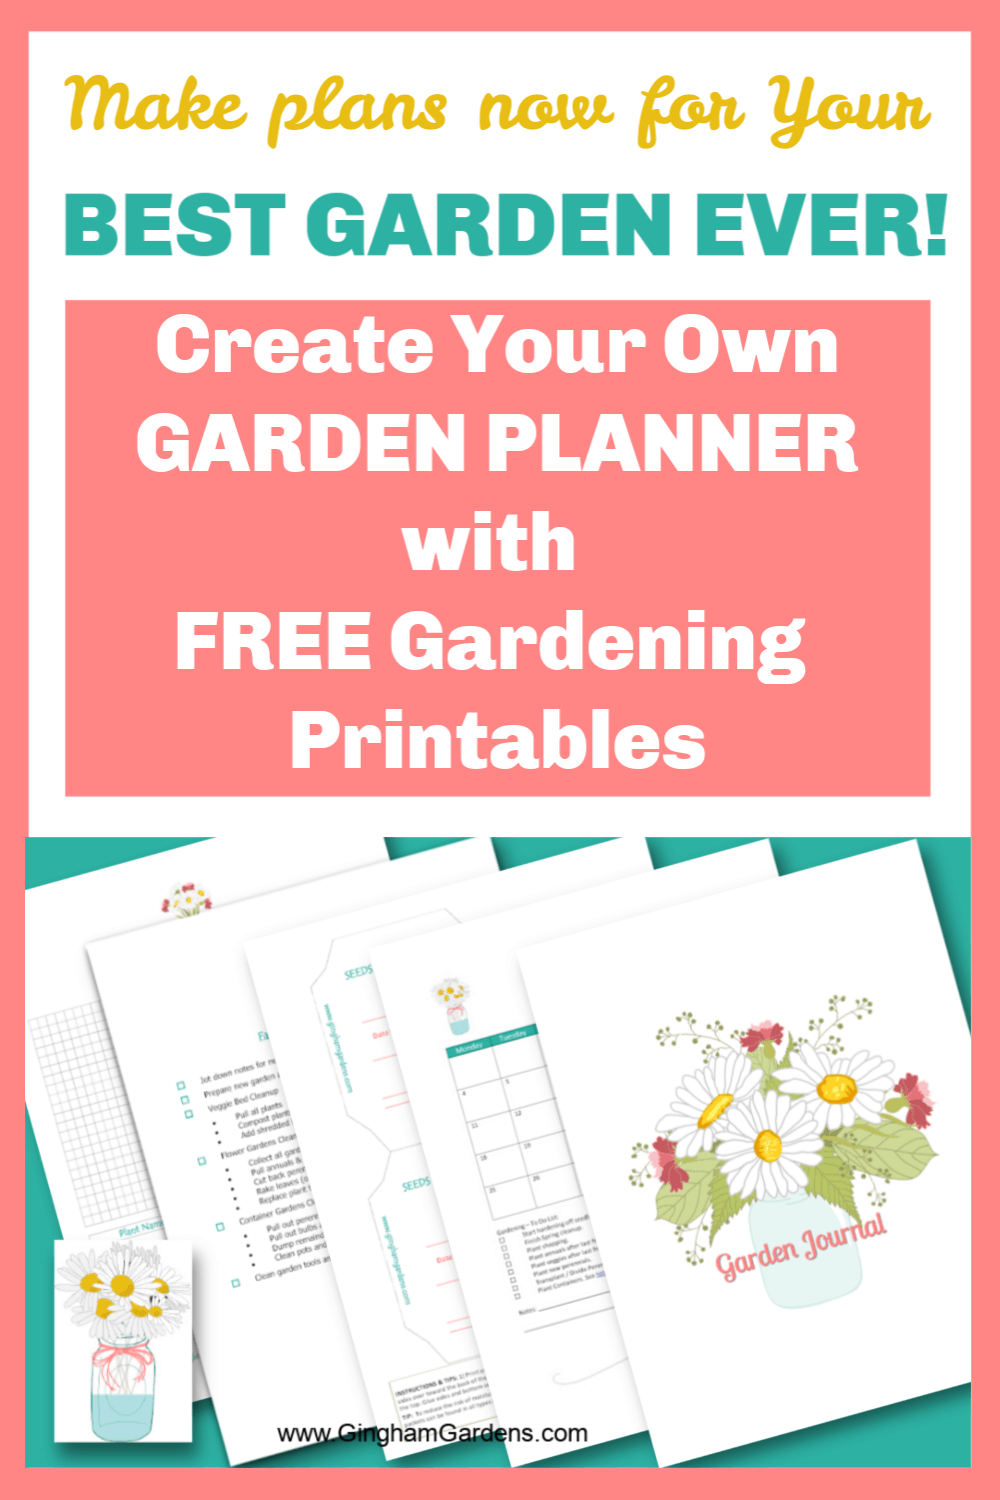 Free Gardening Printables with Text Overlay Create Your Own Garden Planner